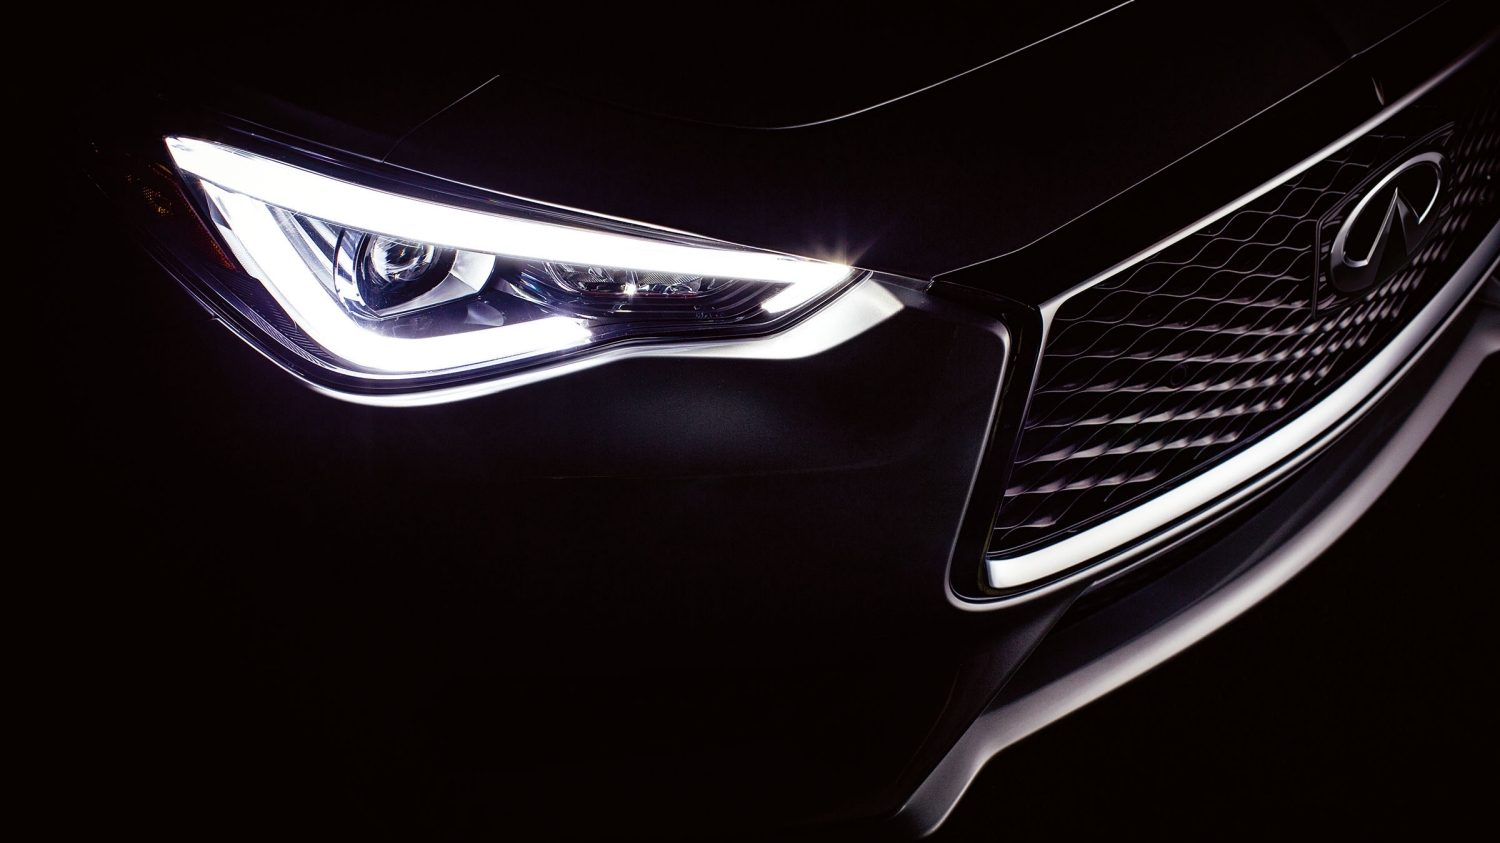 2018 INFINITI Q60 Red Sport 400 Sports Coupe Design | Illuminating LED Headlights